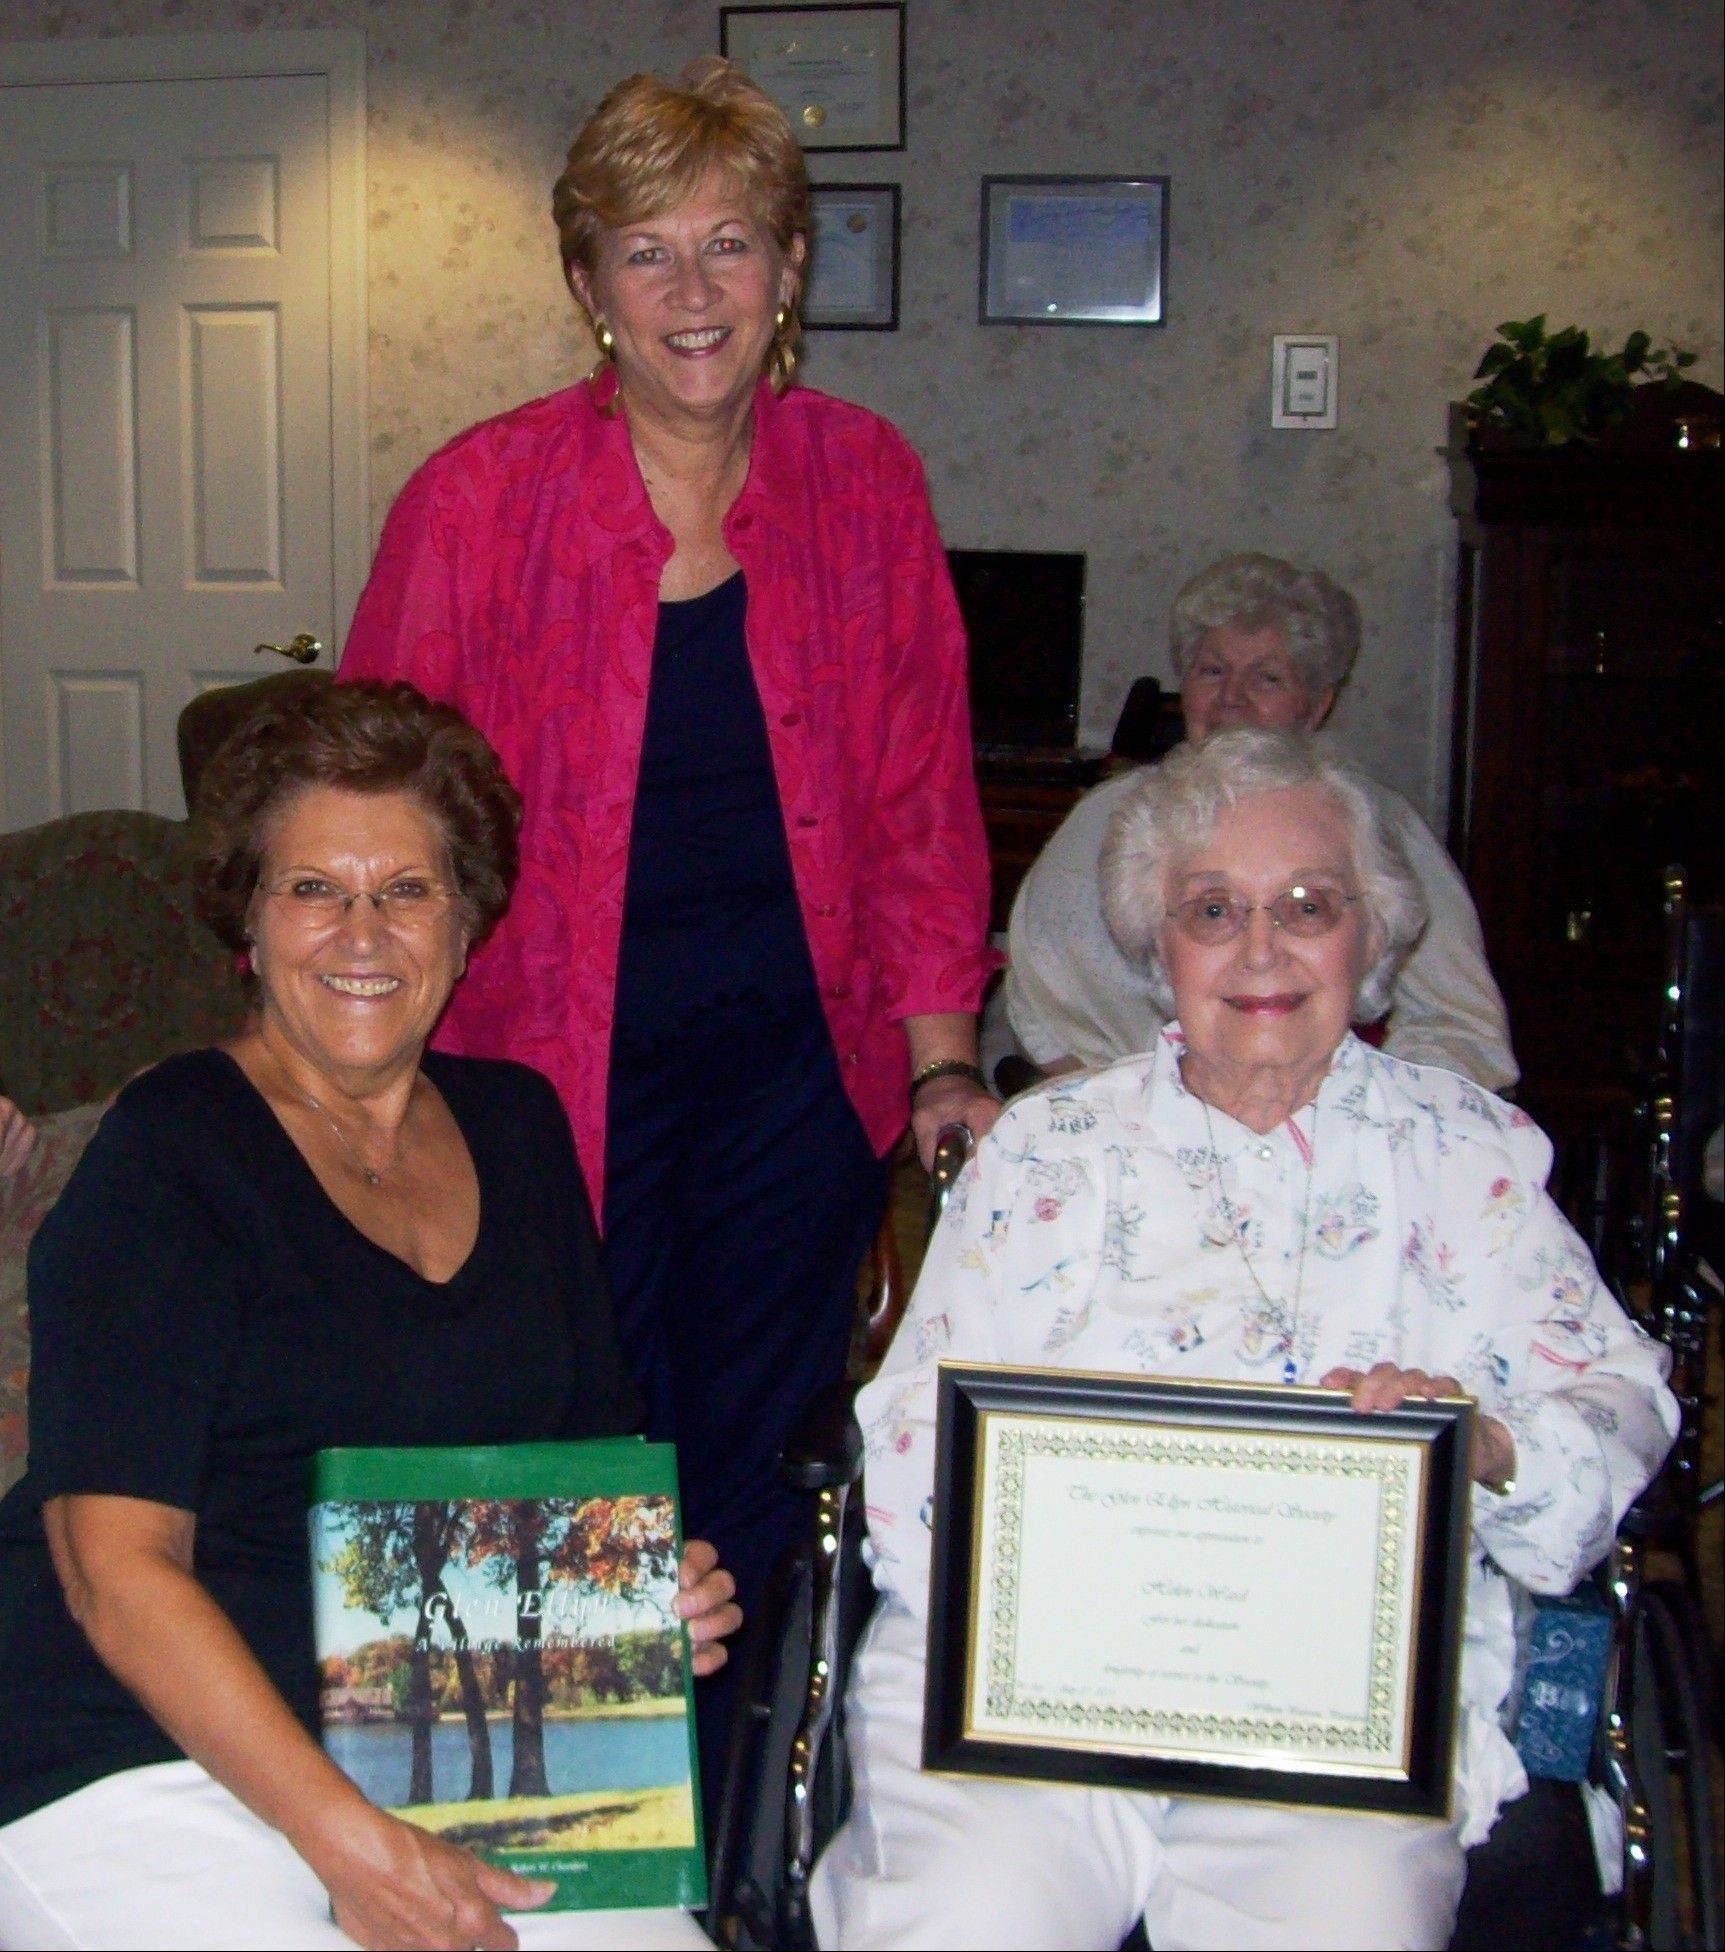 Helen Ward, right, received the Glen Ellyn Historical Society�s service award in 2011 from president Ruth Wright, left holding a copy of �Glen Ellyn: a Community Remembered,� and past executive director Jane Rio, center.